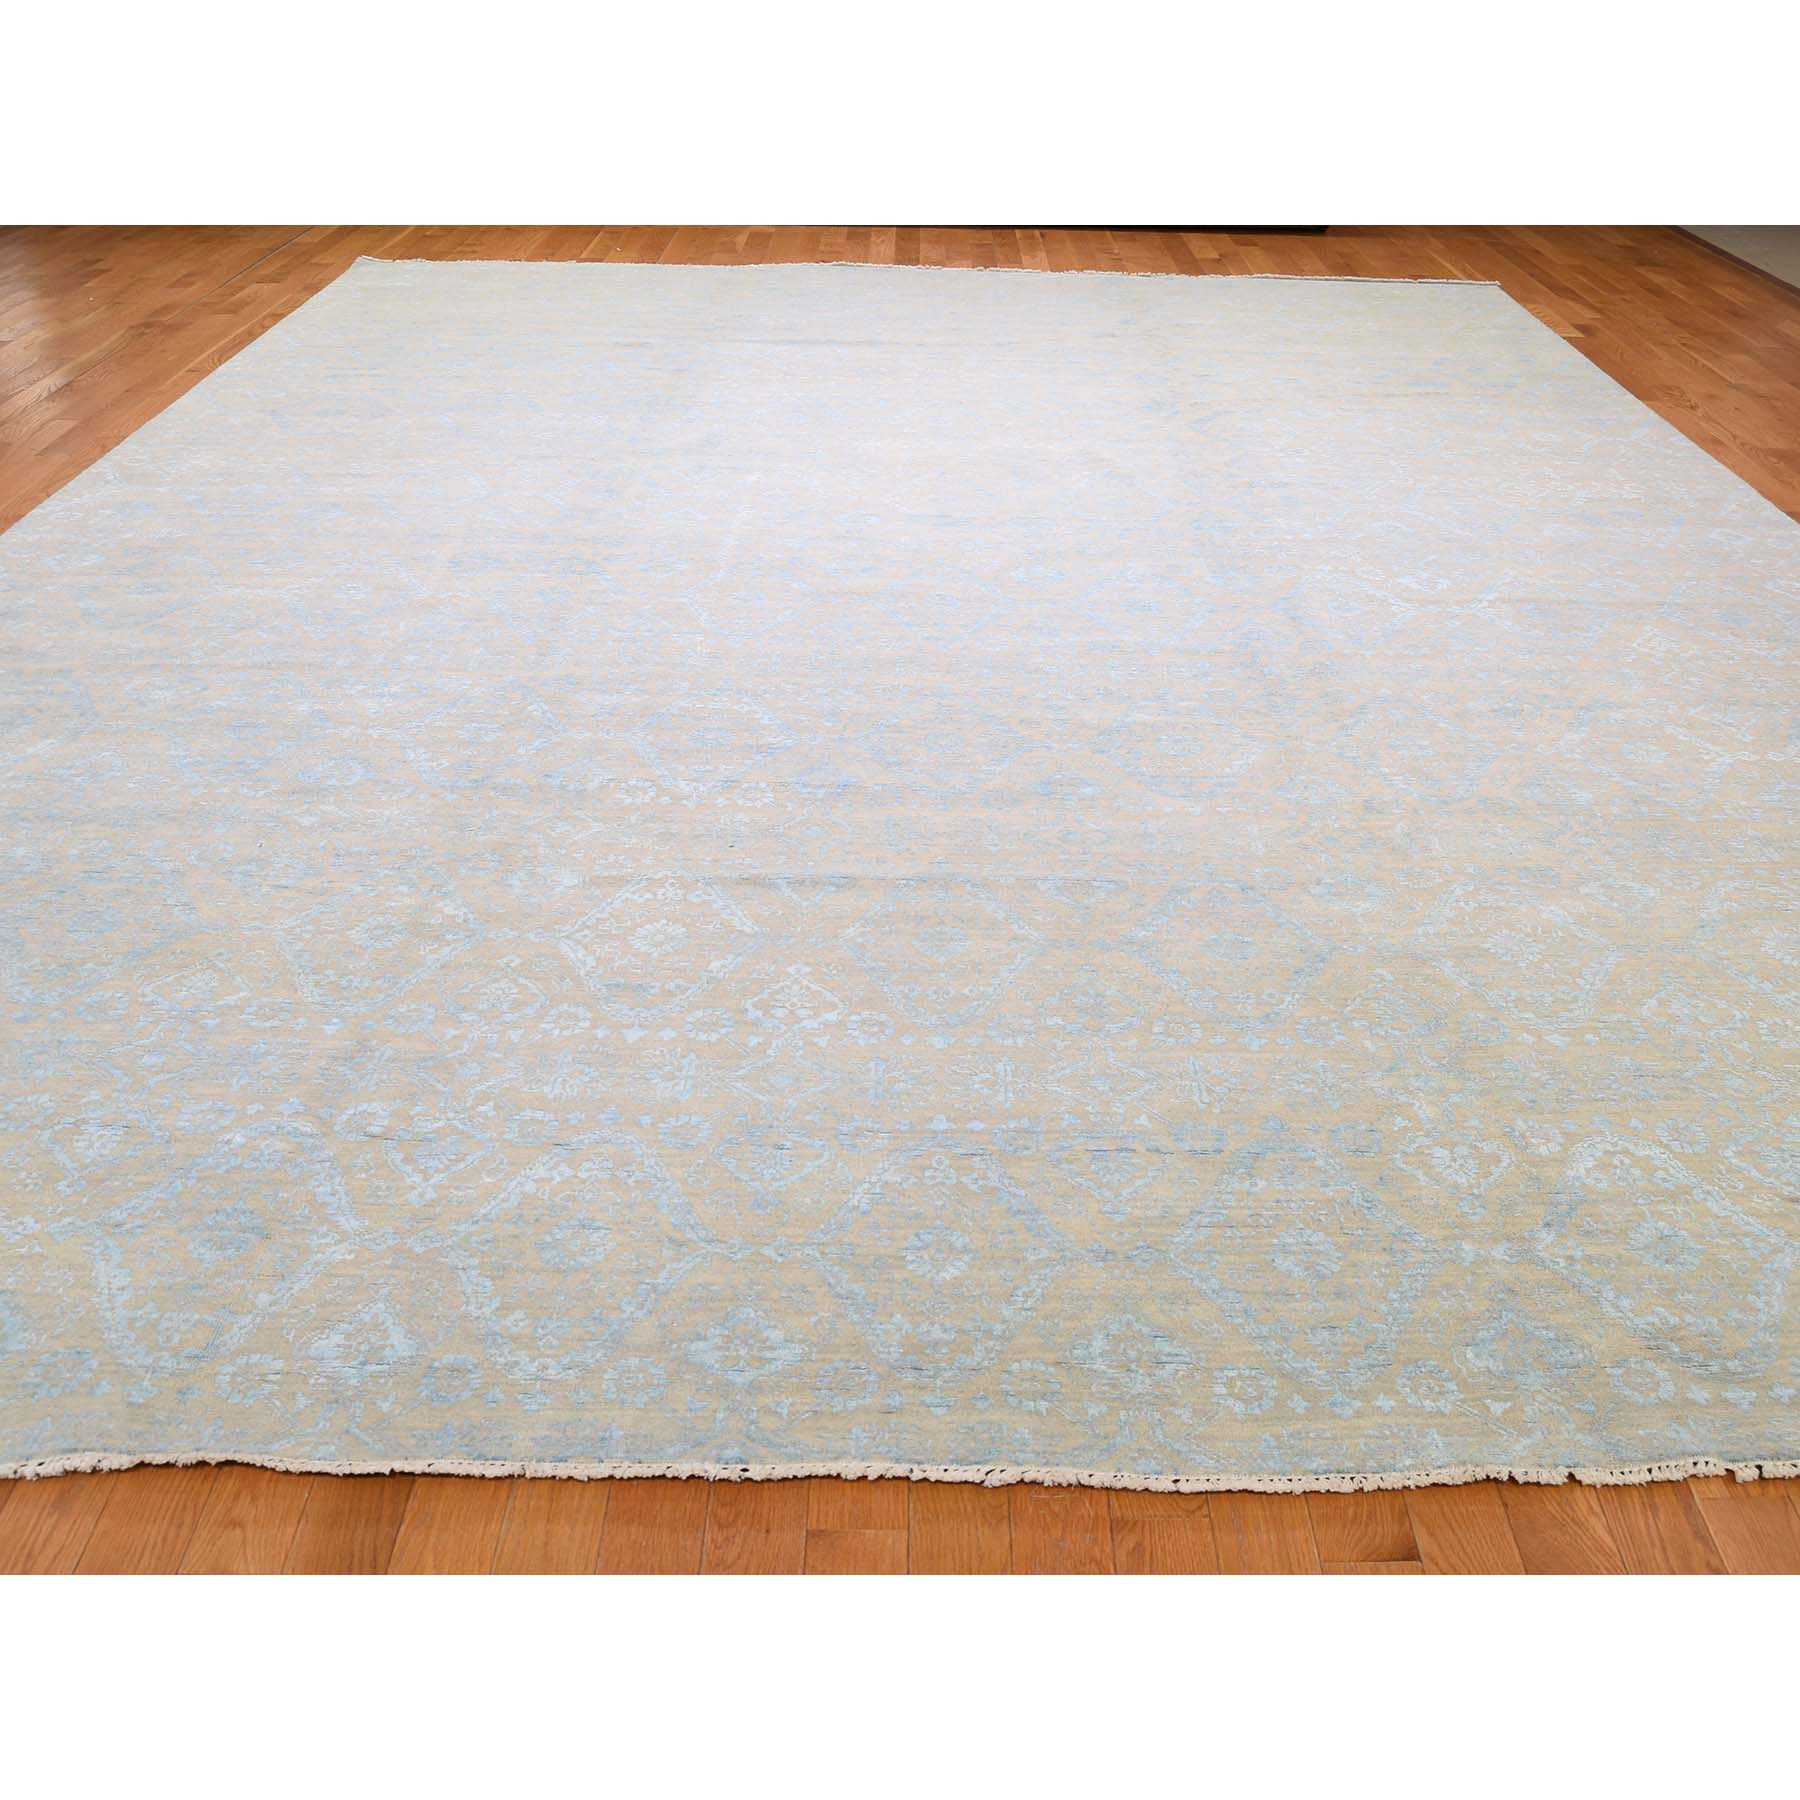 11-10 x15-  Wool and Silk Oversize Ikat Tone on Tone Hand Knotted Rug